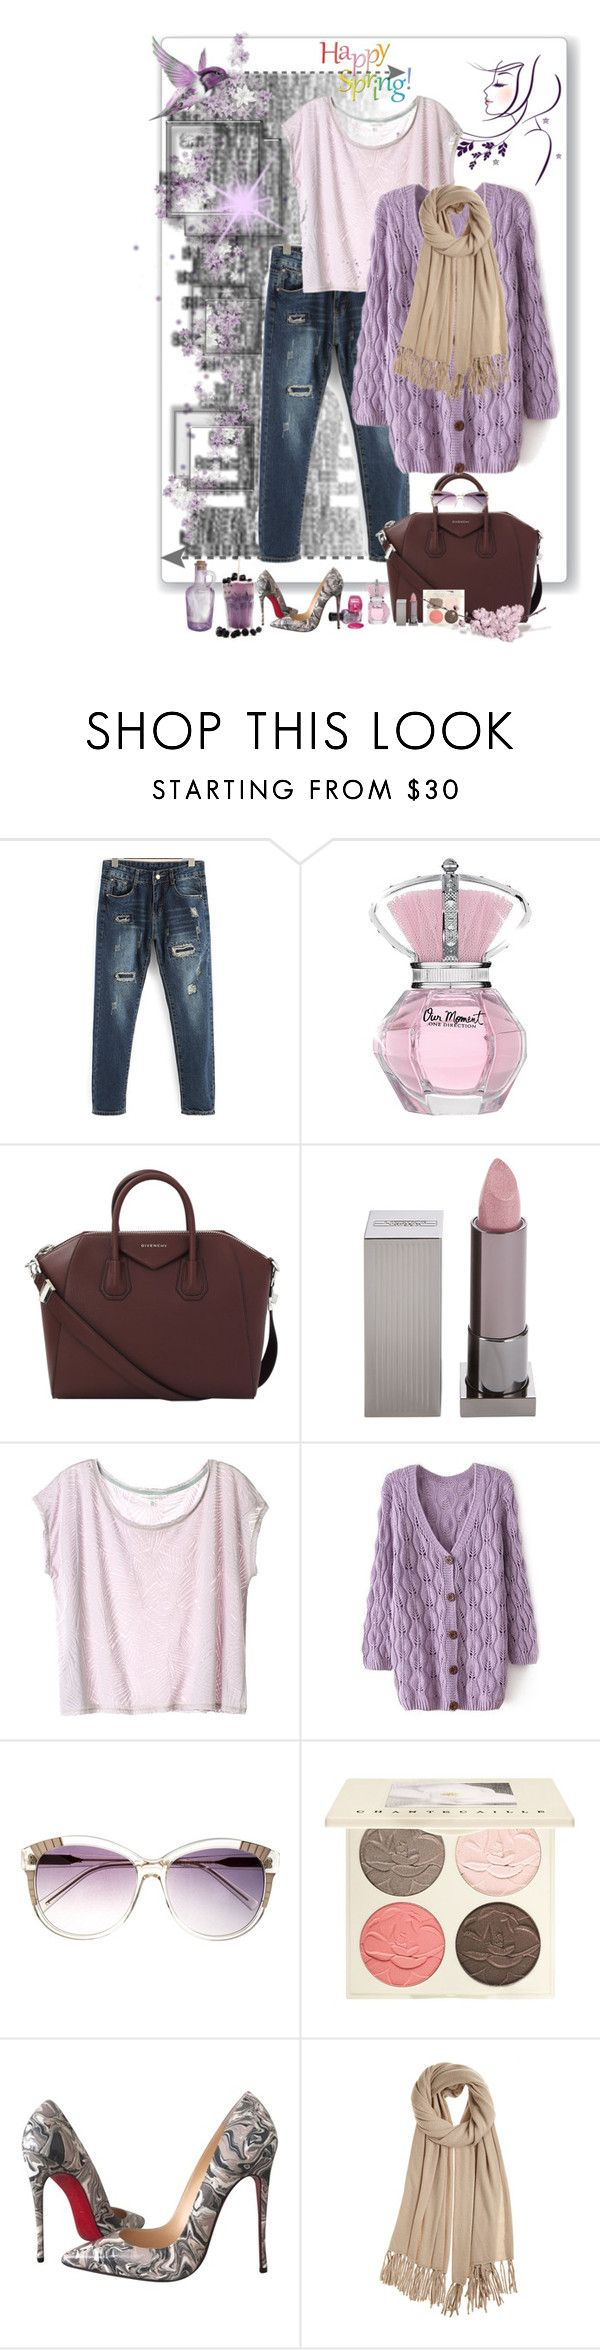 """""""spring 4 2016"""" by ntina36 ❤ liked on Polyvore featuring Givenchy, Lipstick Queen, Heidi London, Chantecaille, Christian Louboutin and Calypso St. Barth"""